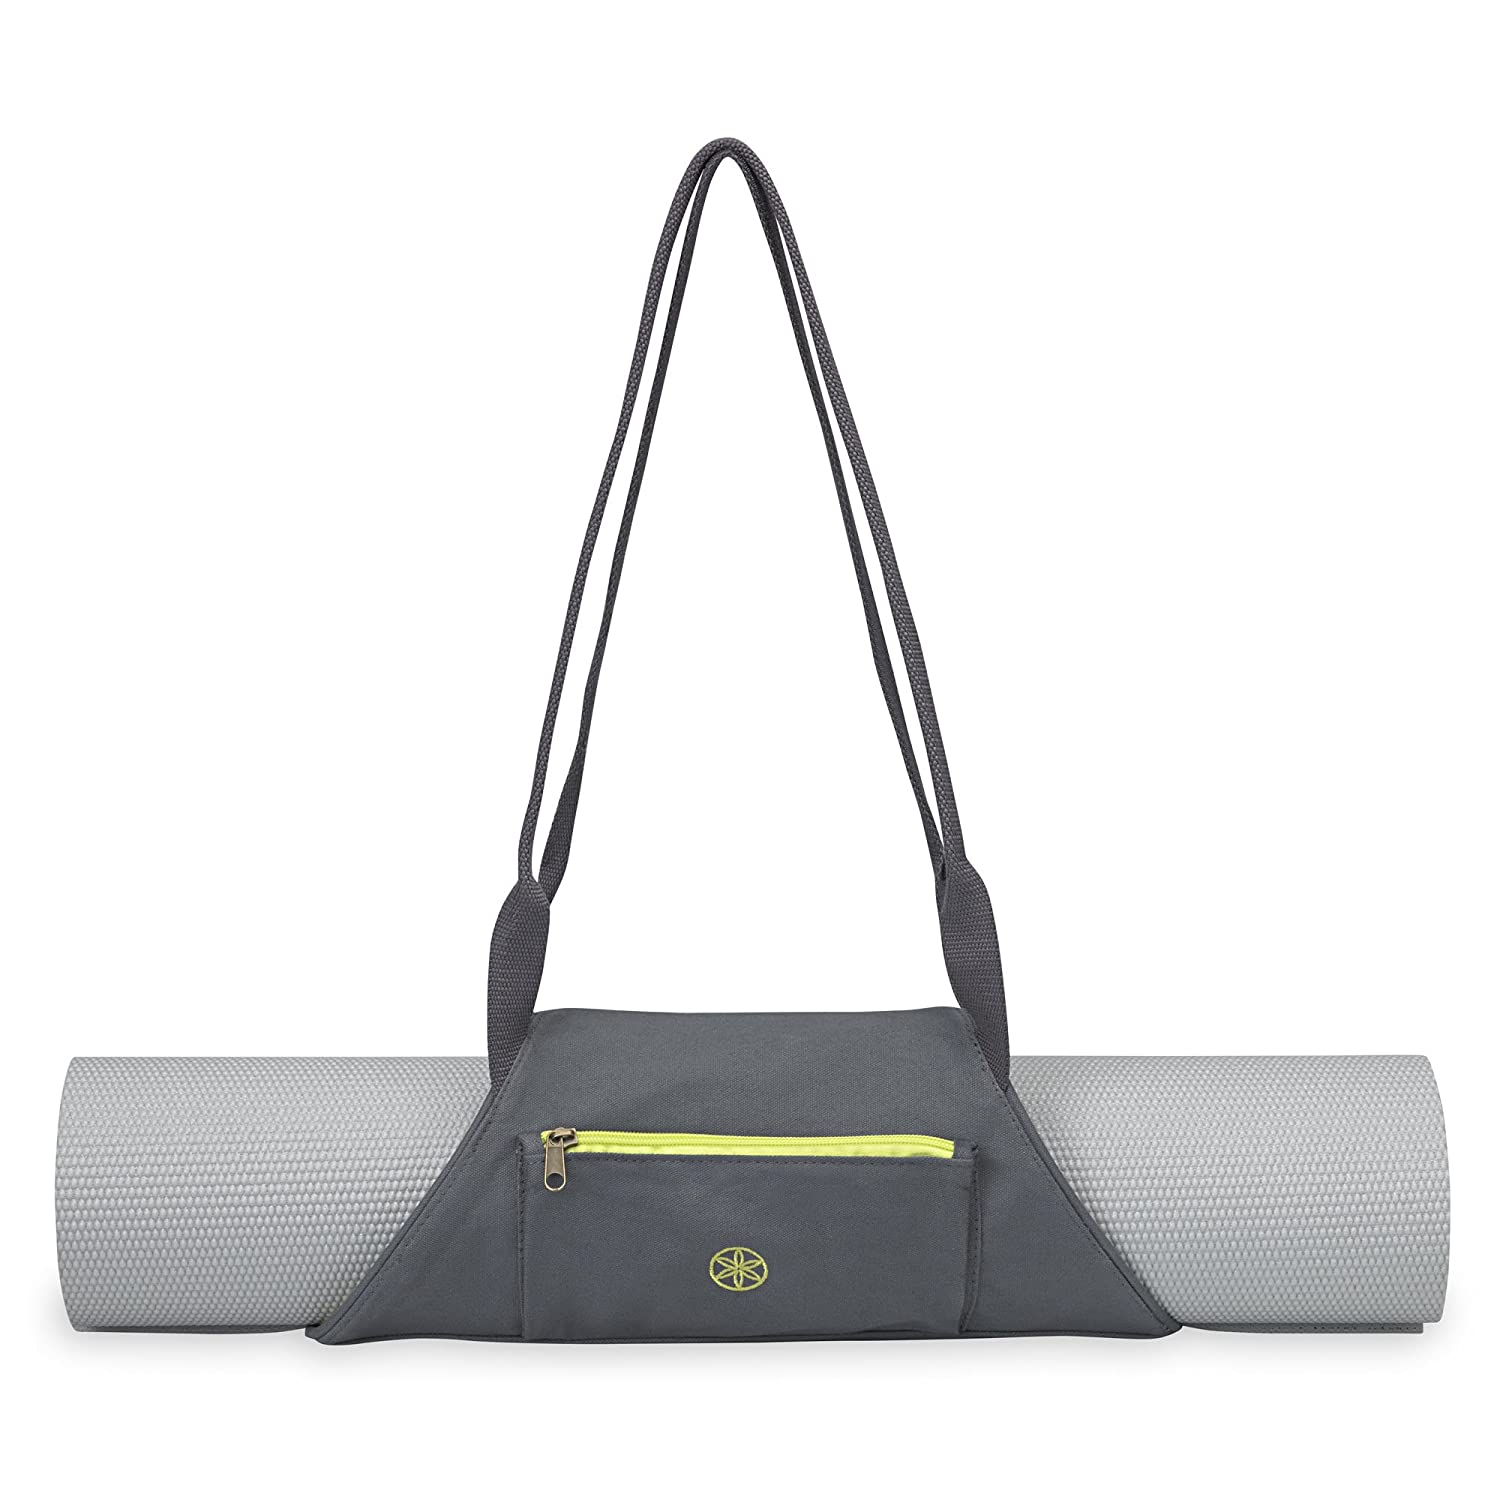 Gaiam Yoga Mat Carrier Only $6...